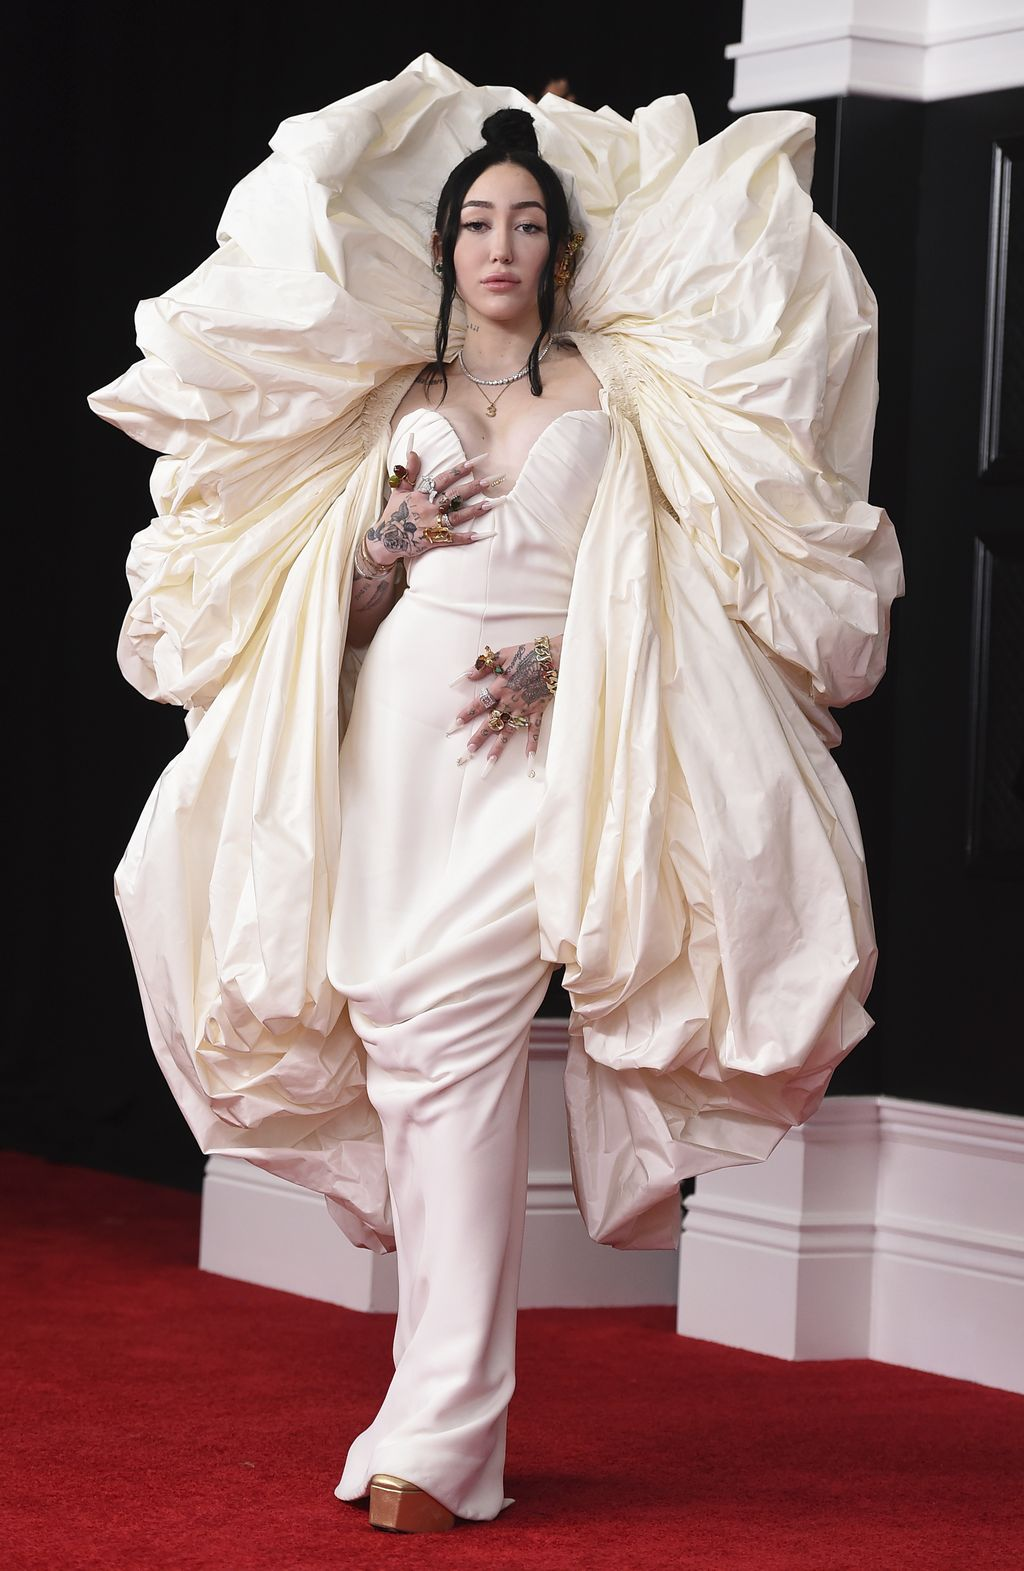 Noah Cyrus arrives at the 63rd annual Grammy Awards at the Los Angeles Convention Center on Sunday, March 14, 2021. (Photo by Jordan Strauss/Invision/AP)